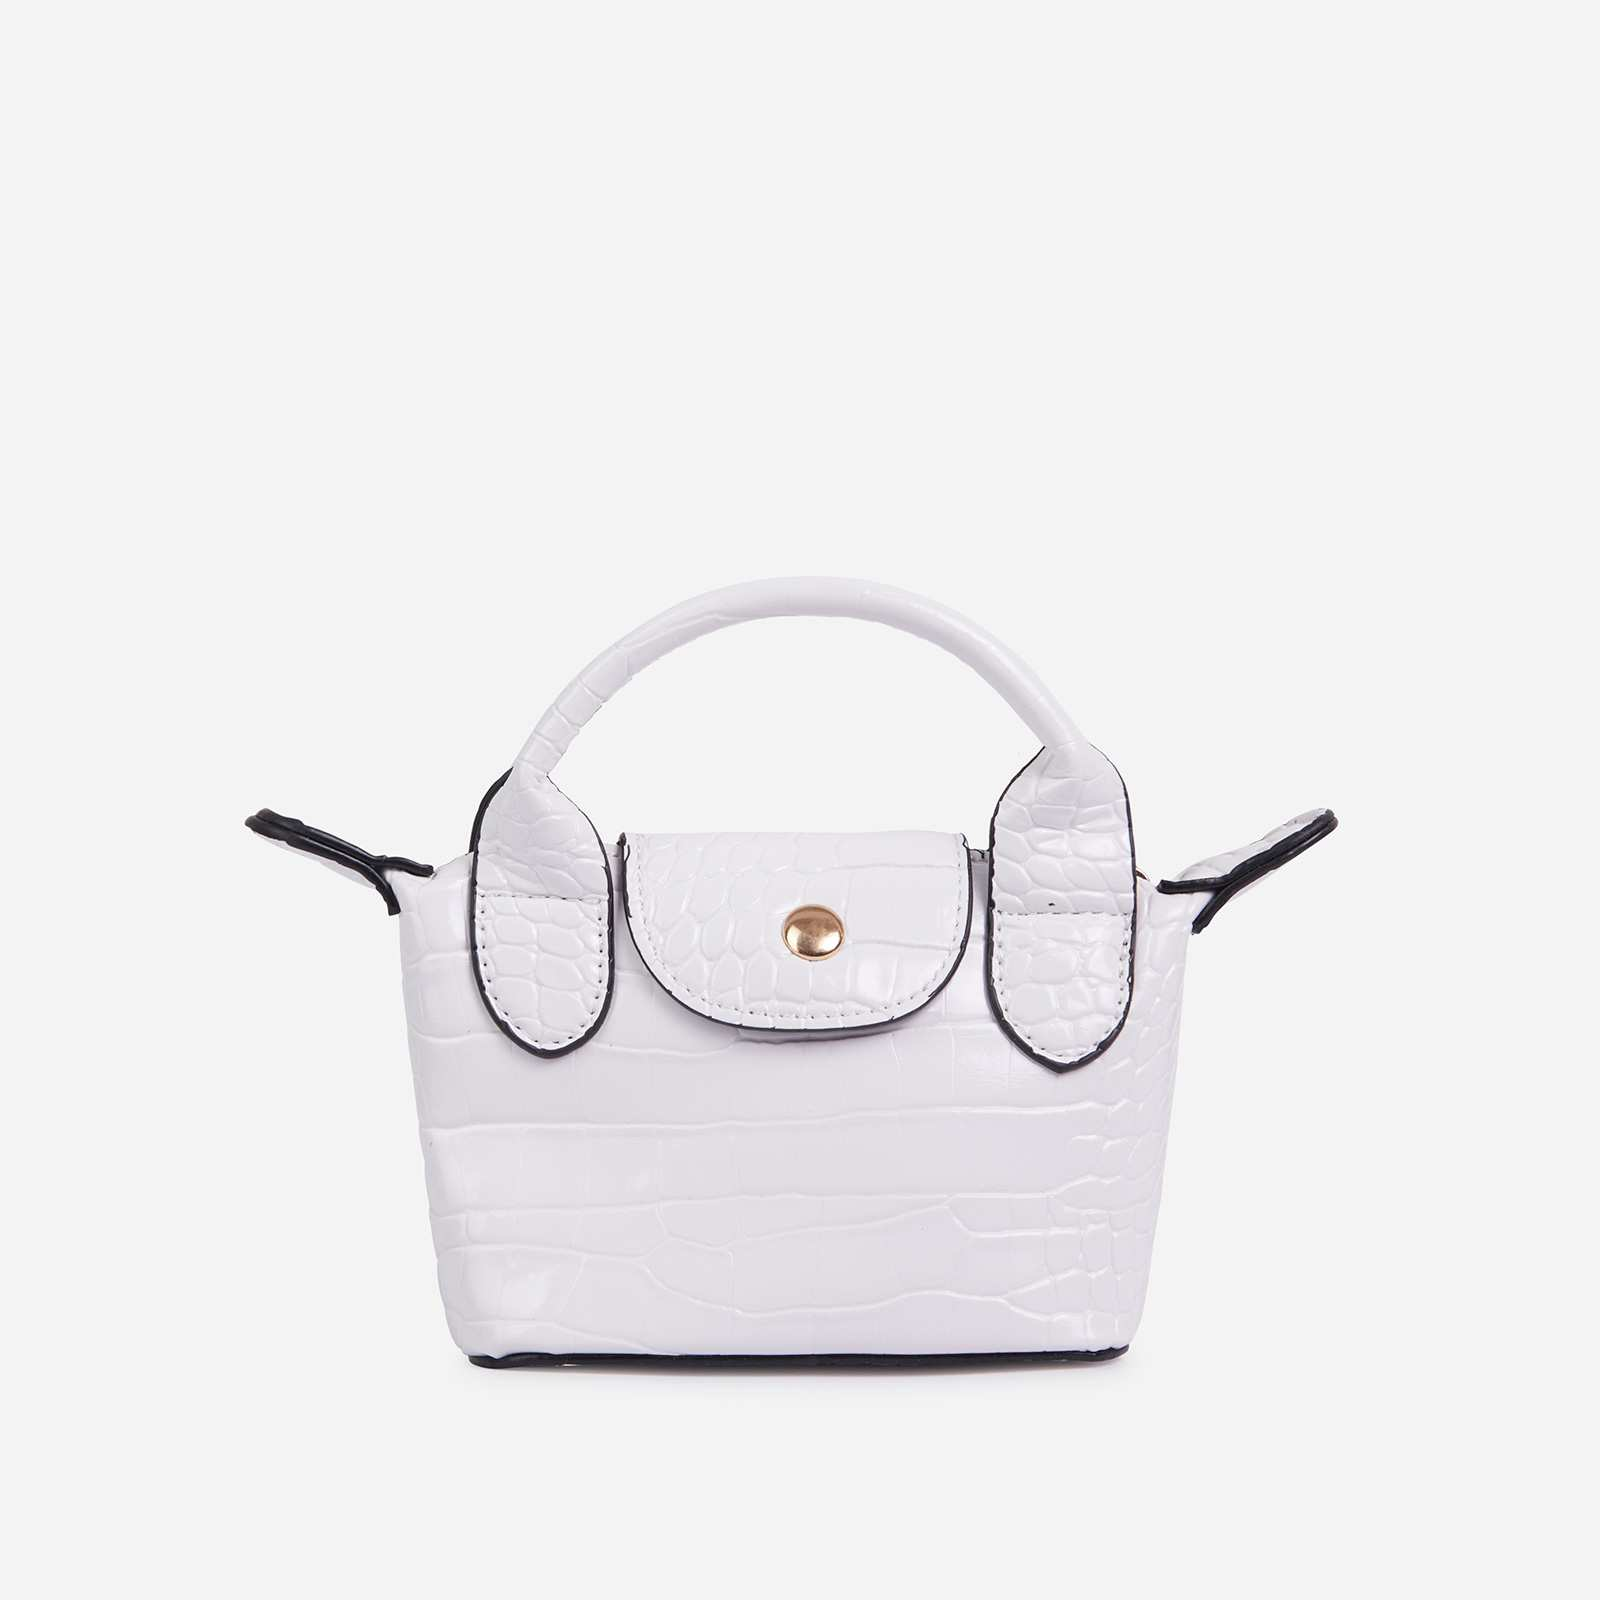 Swift Chain Strap Popper Detail Mini Bag In White Croc Print Patent